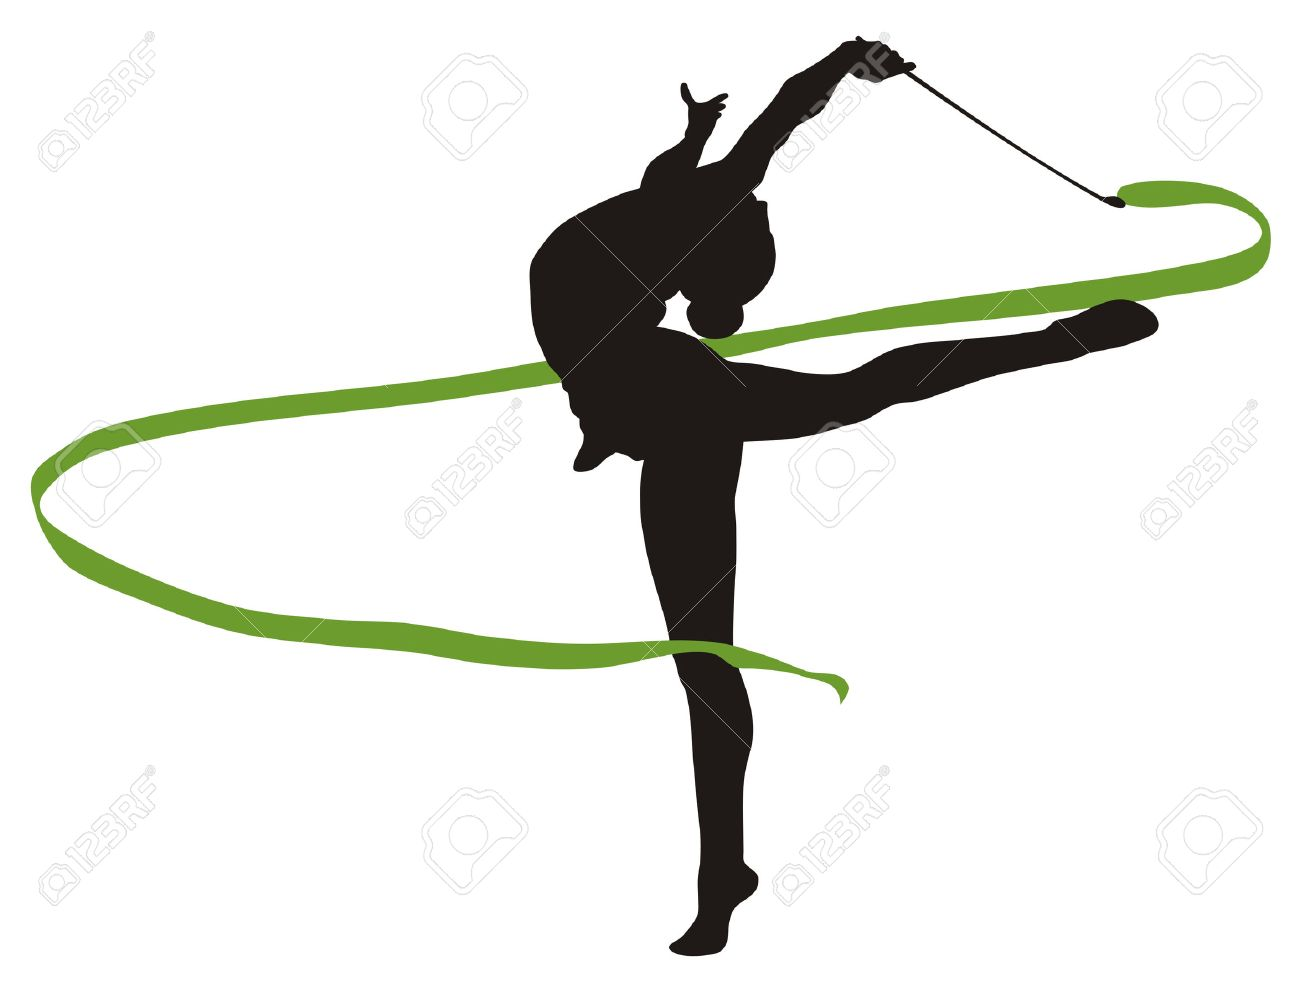 5 703 gymnast cliparts stock vector and royalty free gymnast